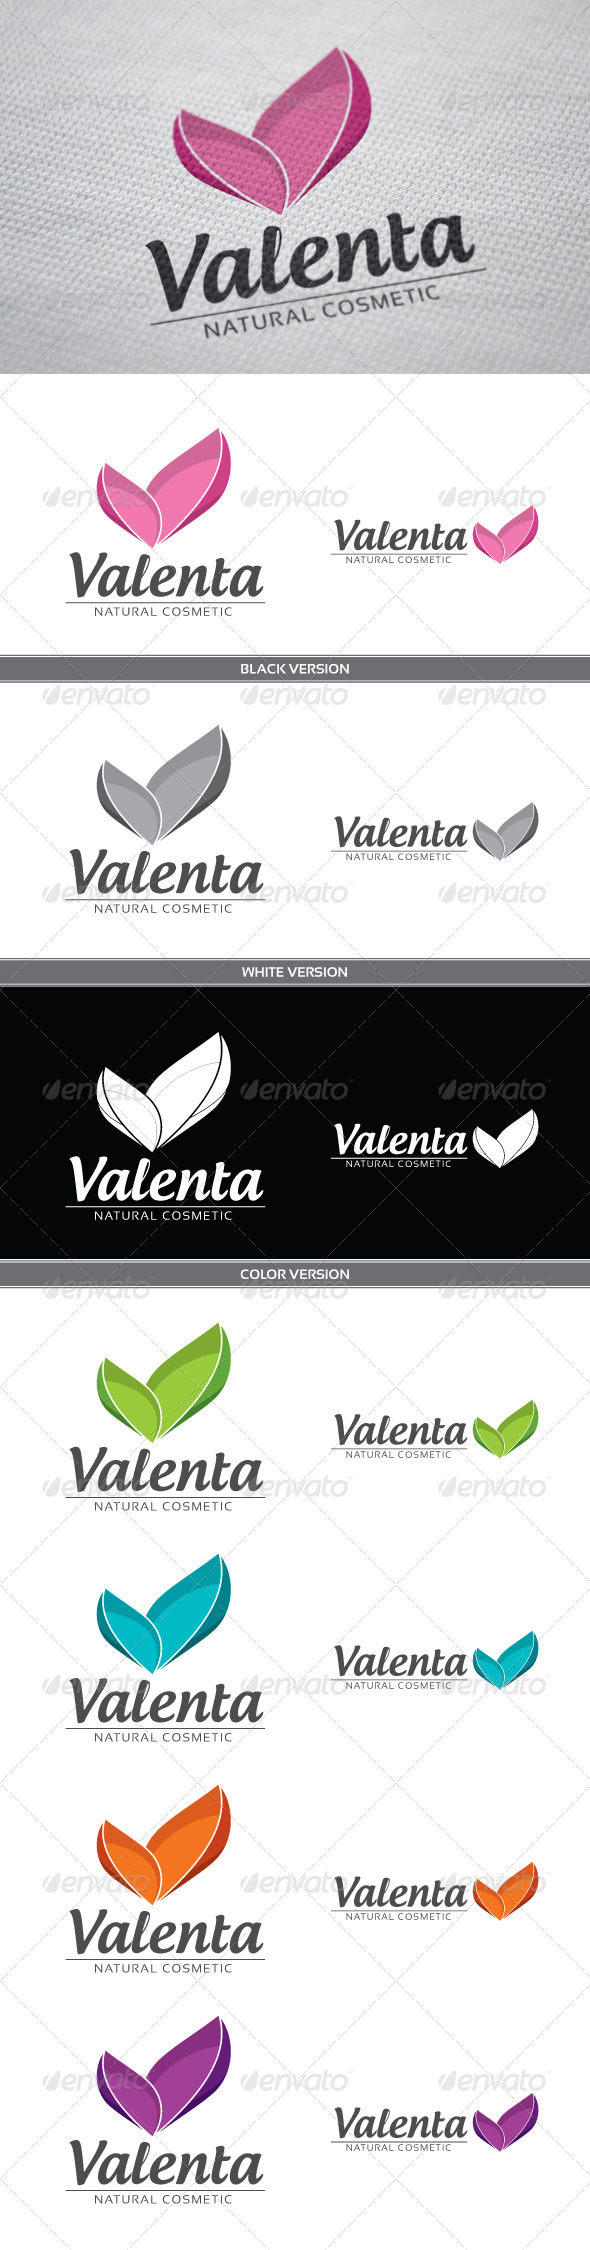 GraphicRiver Valenta 3939480